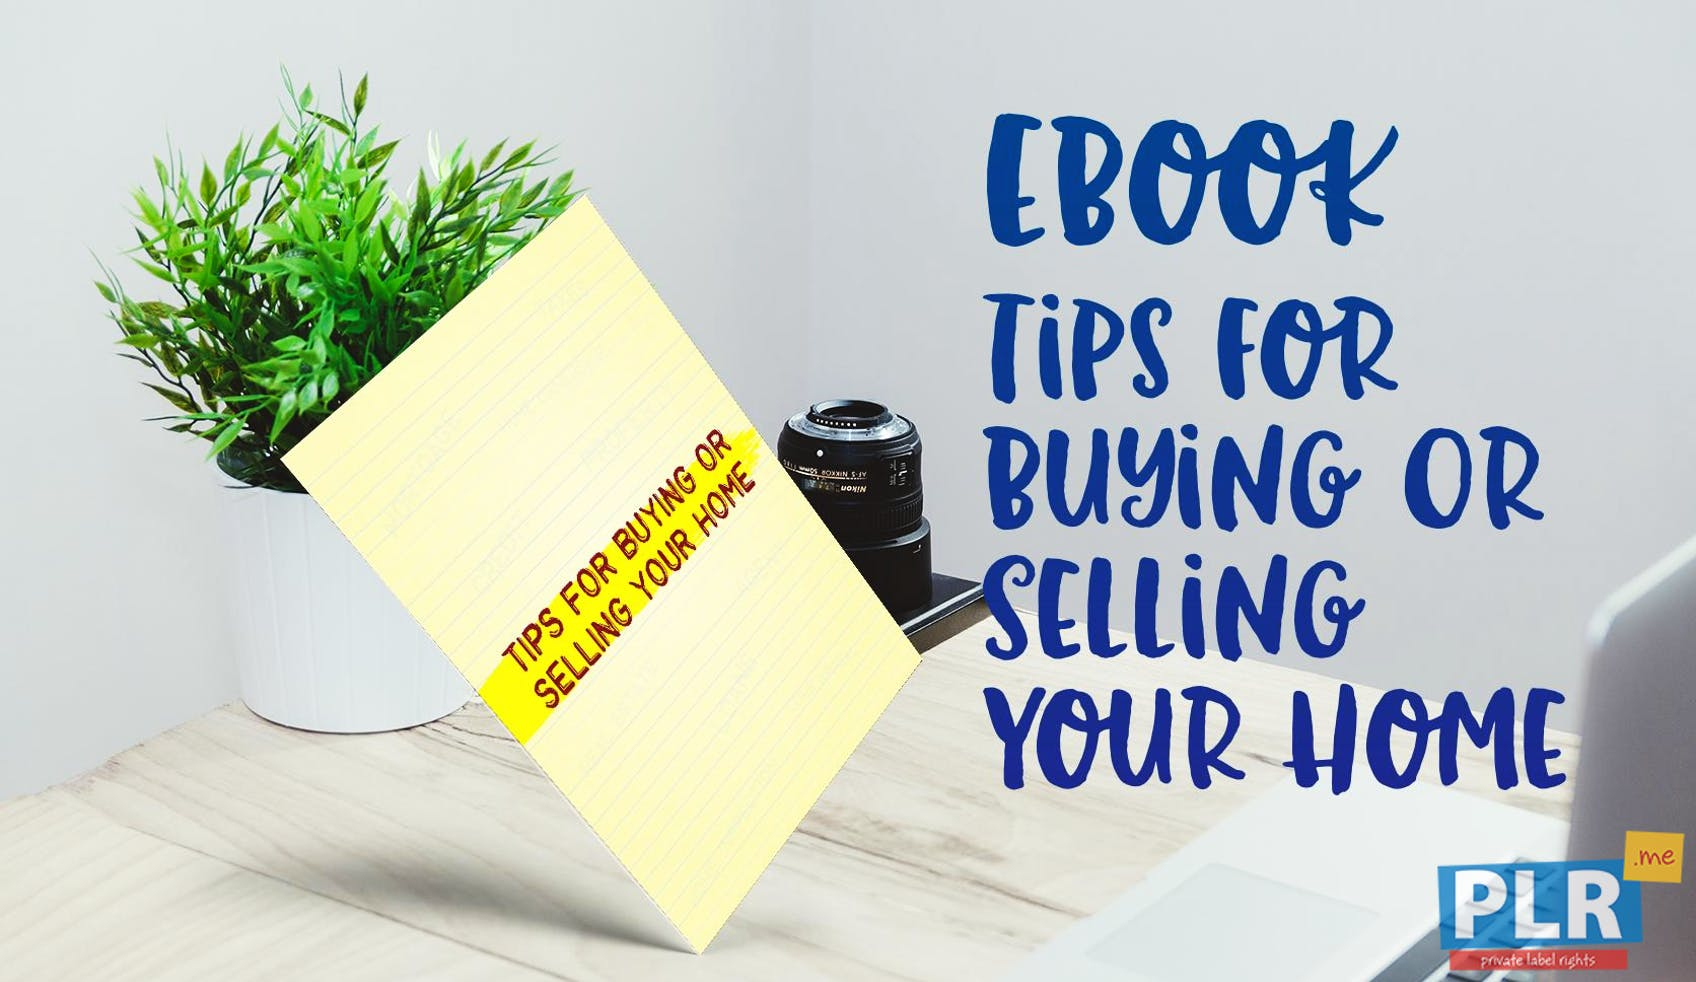 Tips For Buying Or Selling Your Home